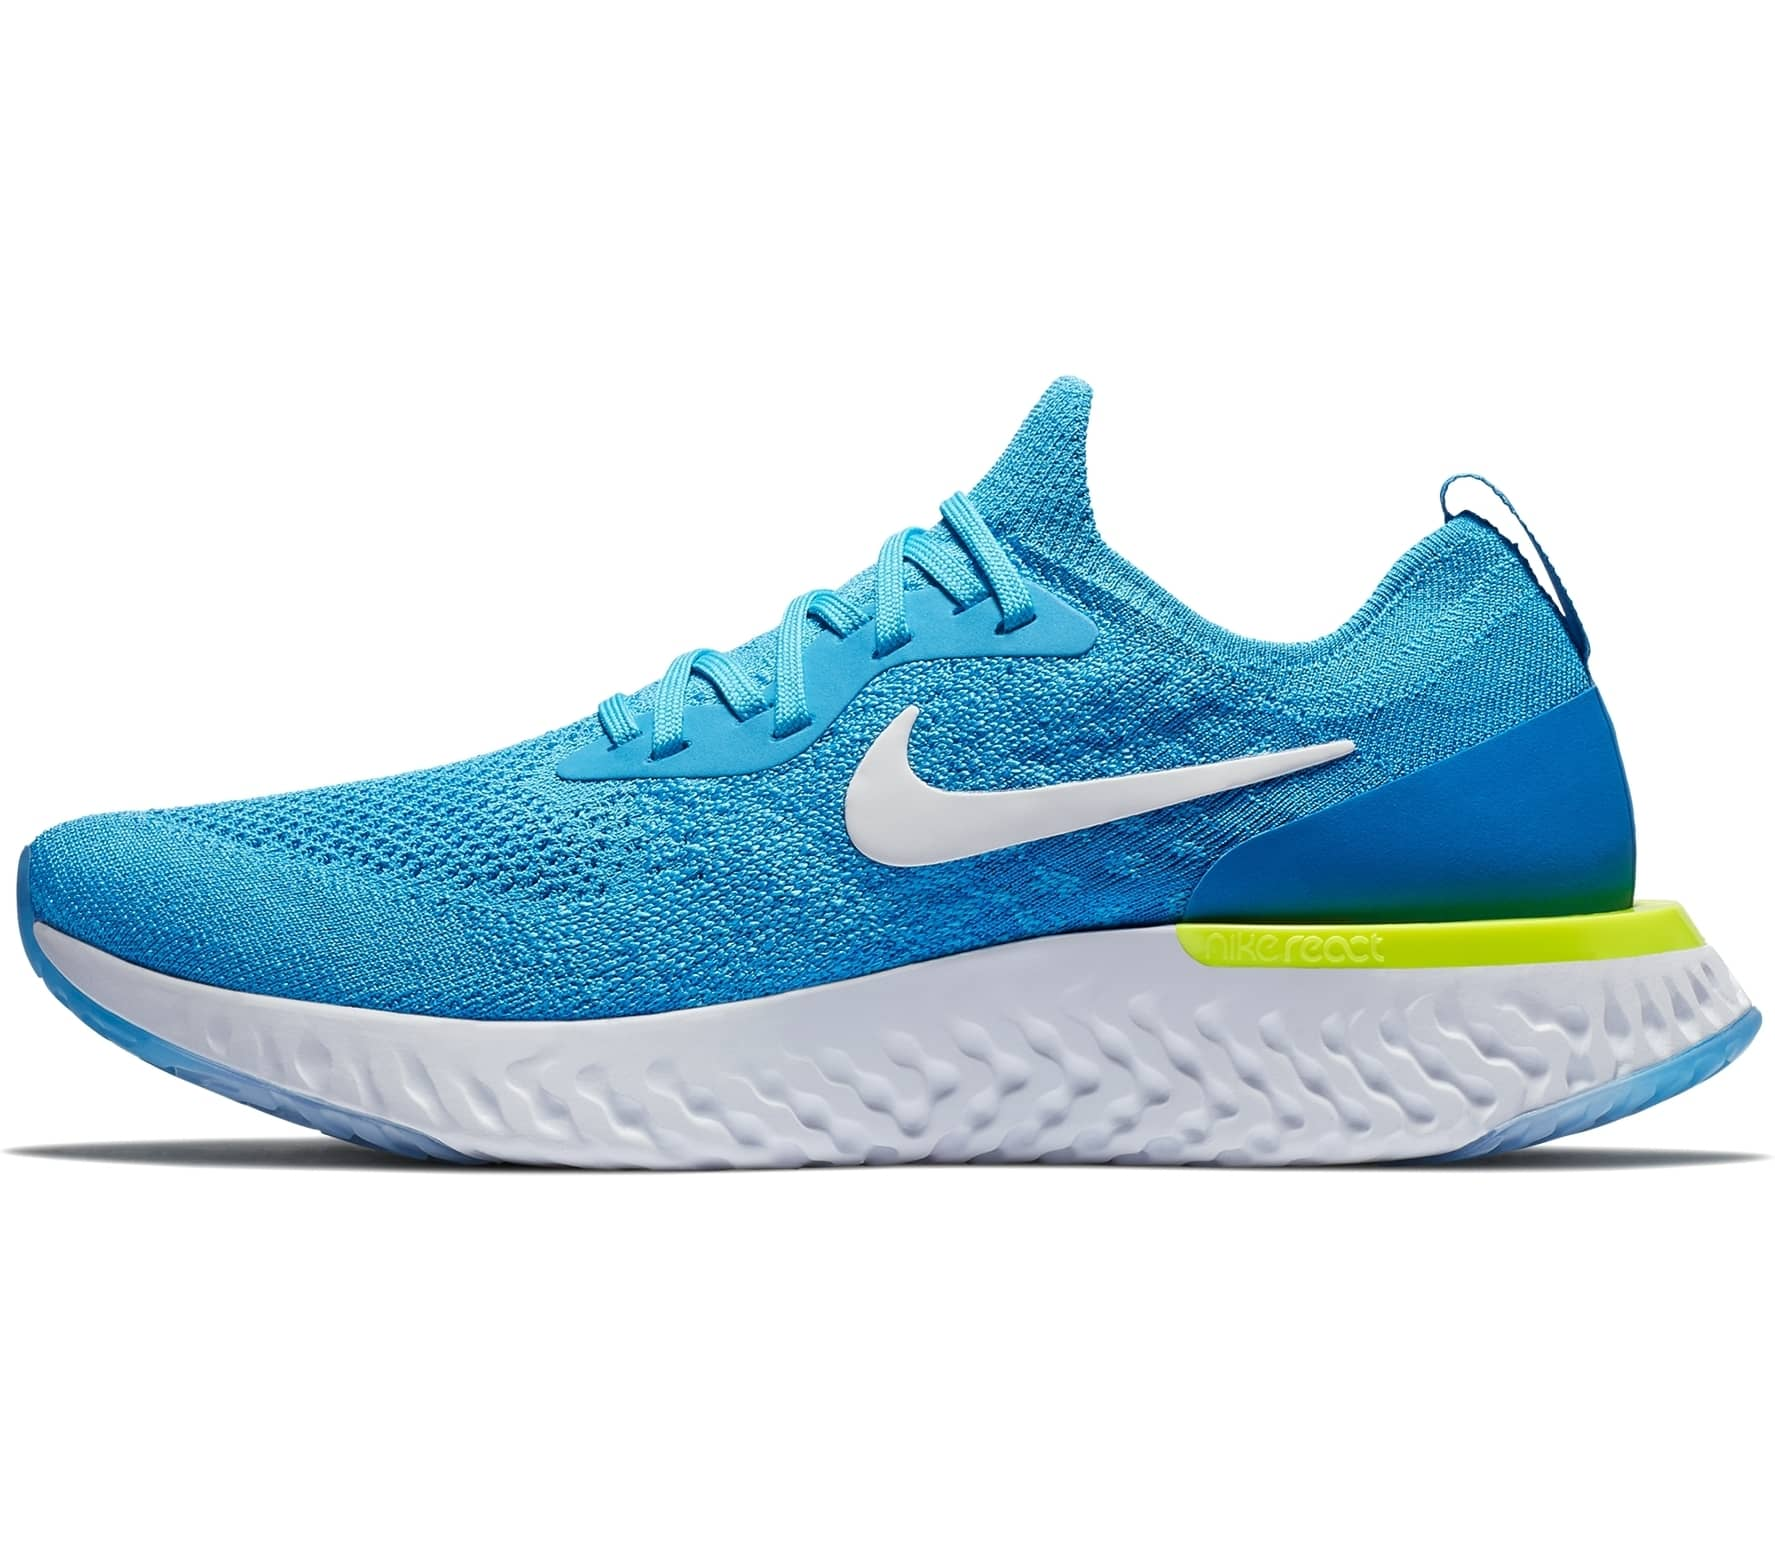 35eaaae85e20a Nike - Epic React Flyknit men s running shoes (blue white) - buy it ...